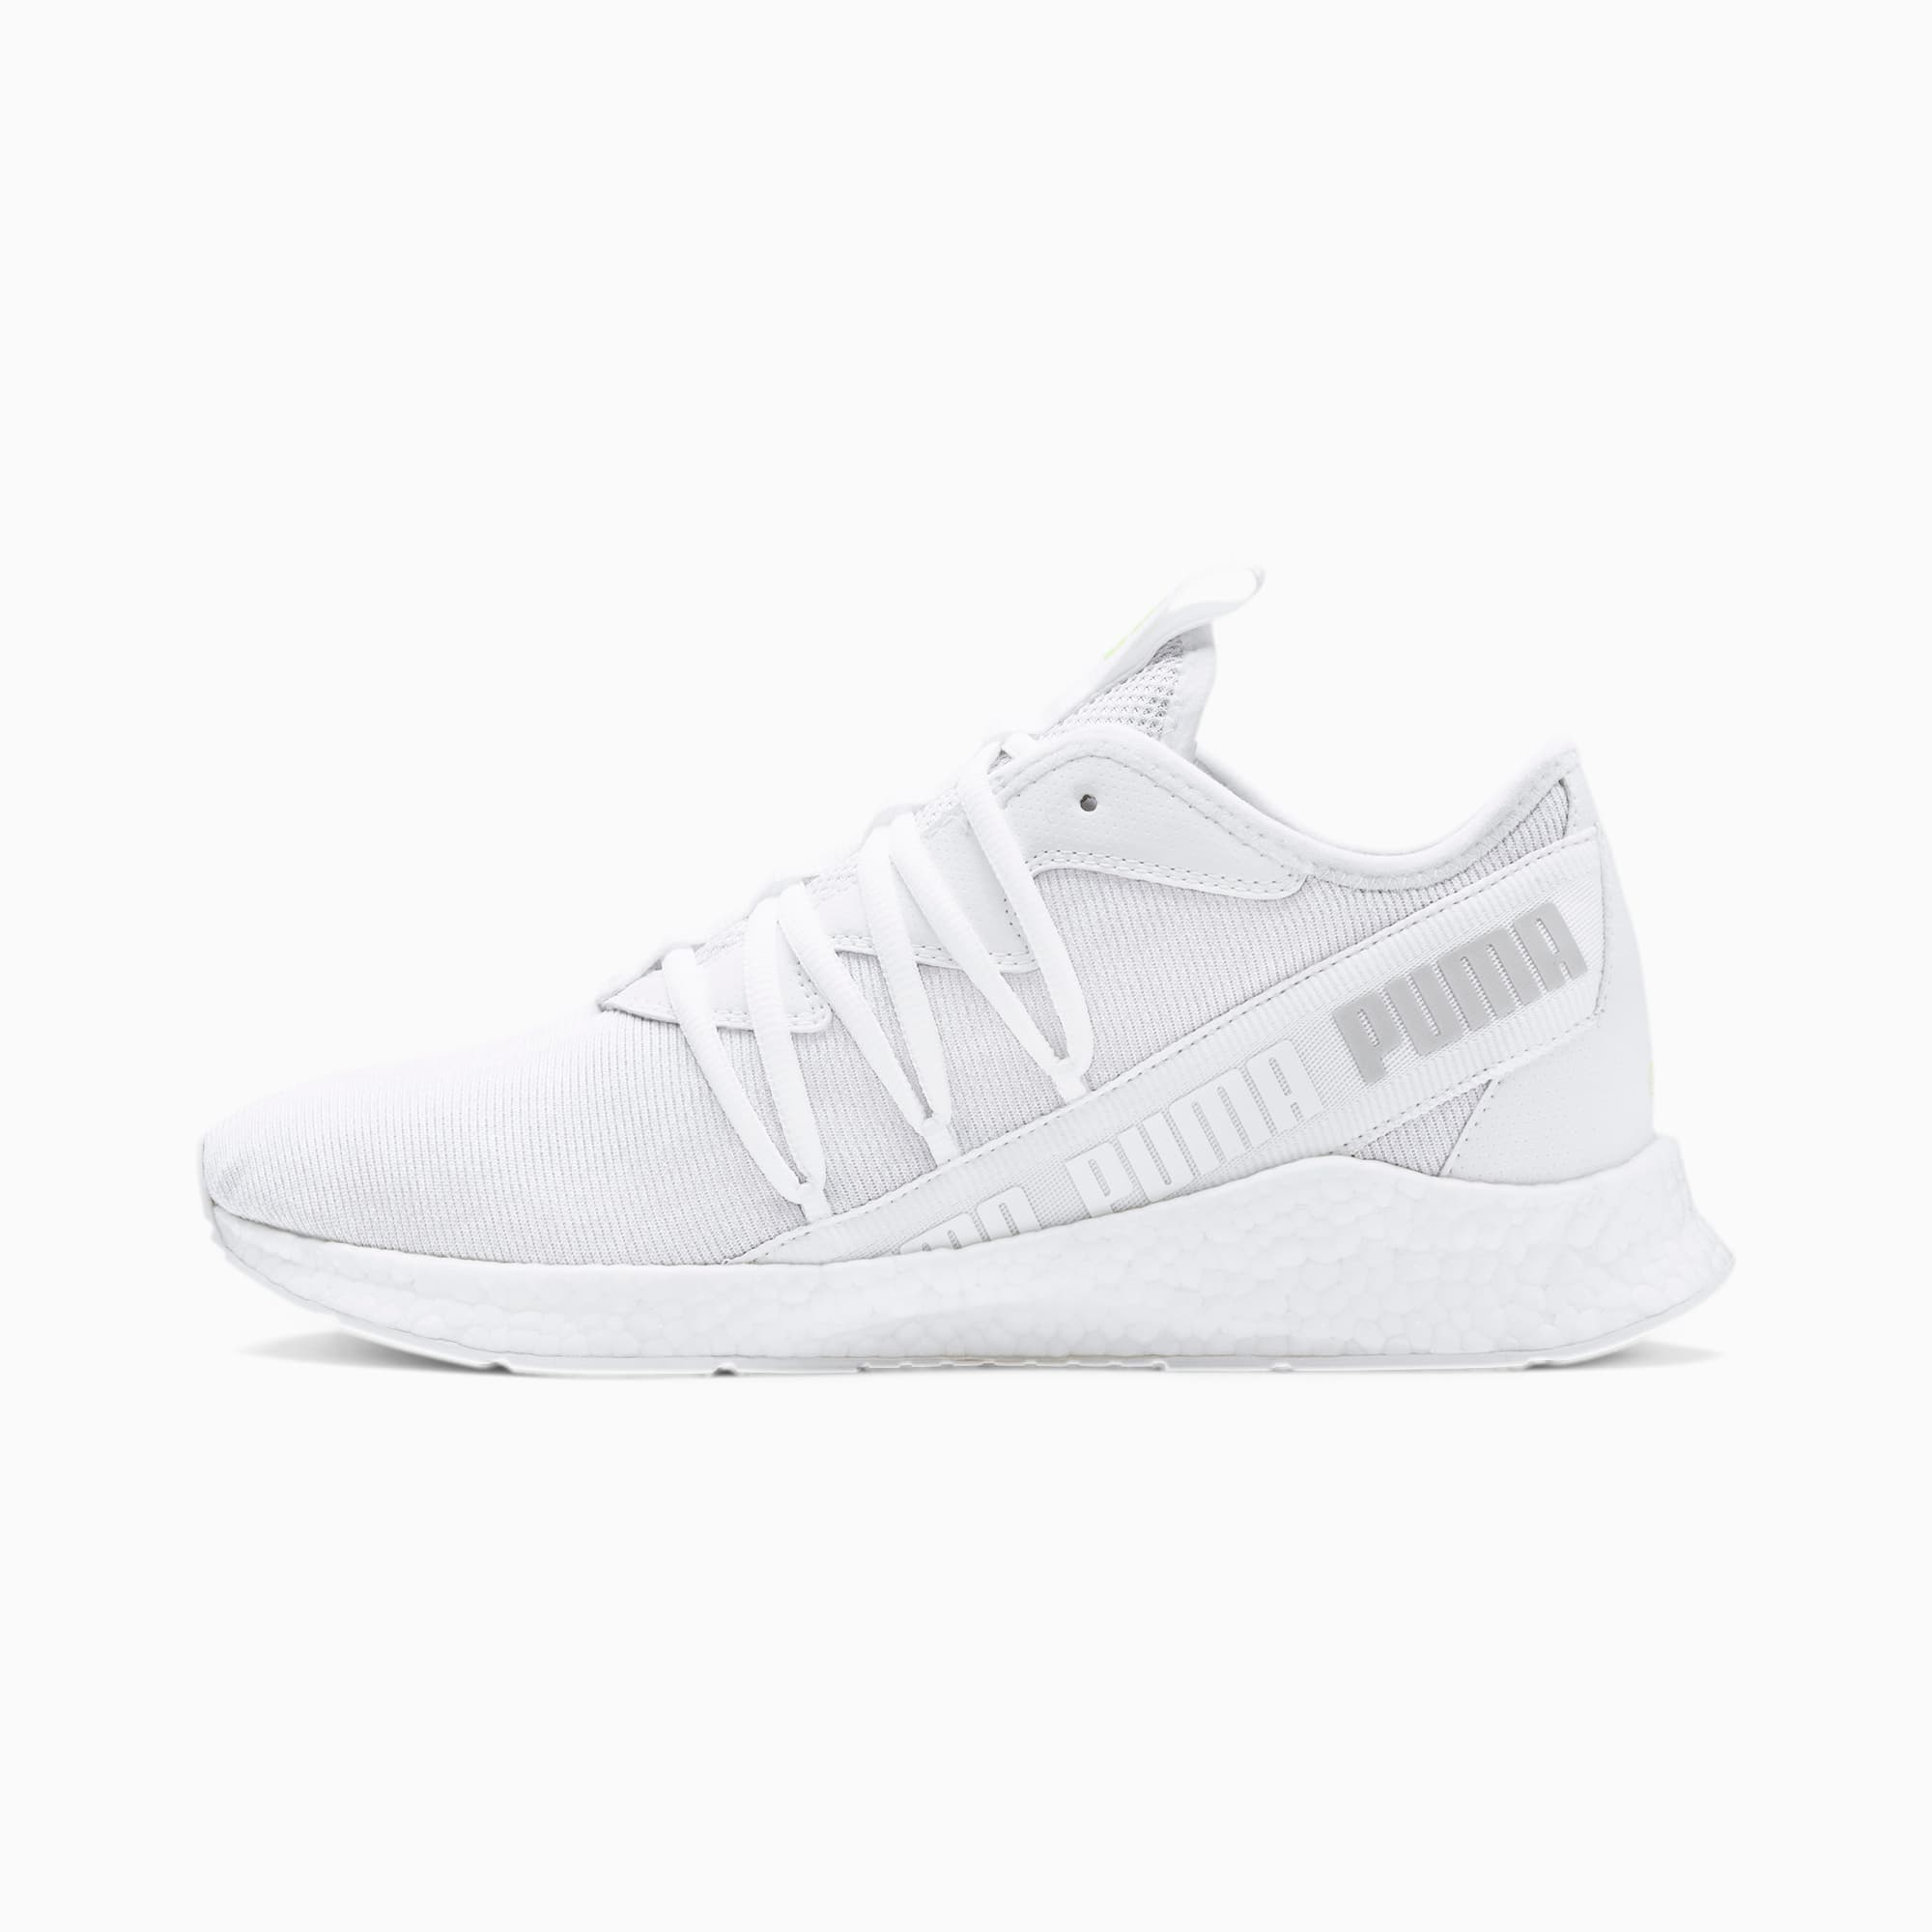 Puma NRGY star sneakers